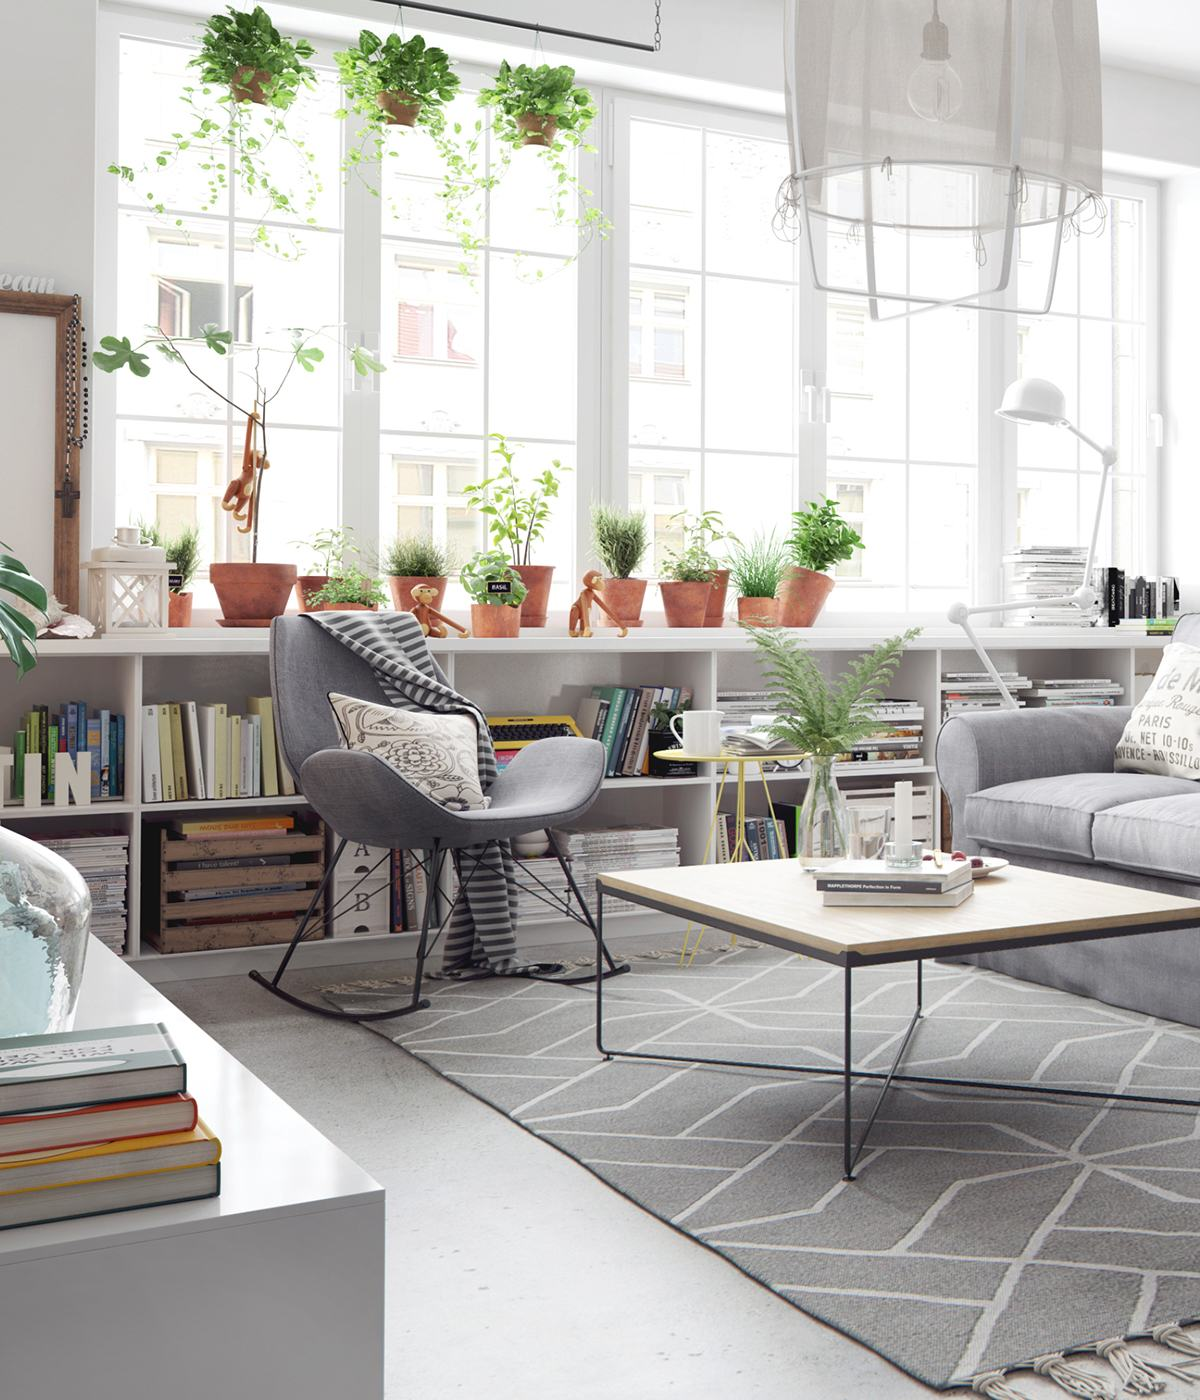 Bright and cheerful 5 beautiful scandinavian inspired Interior home decoration